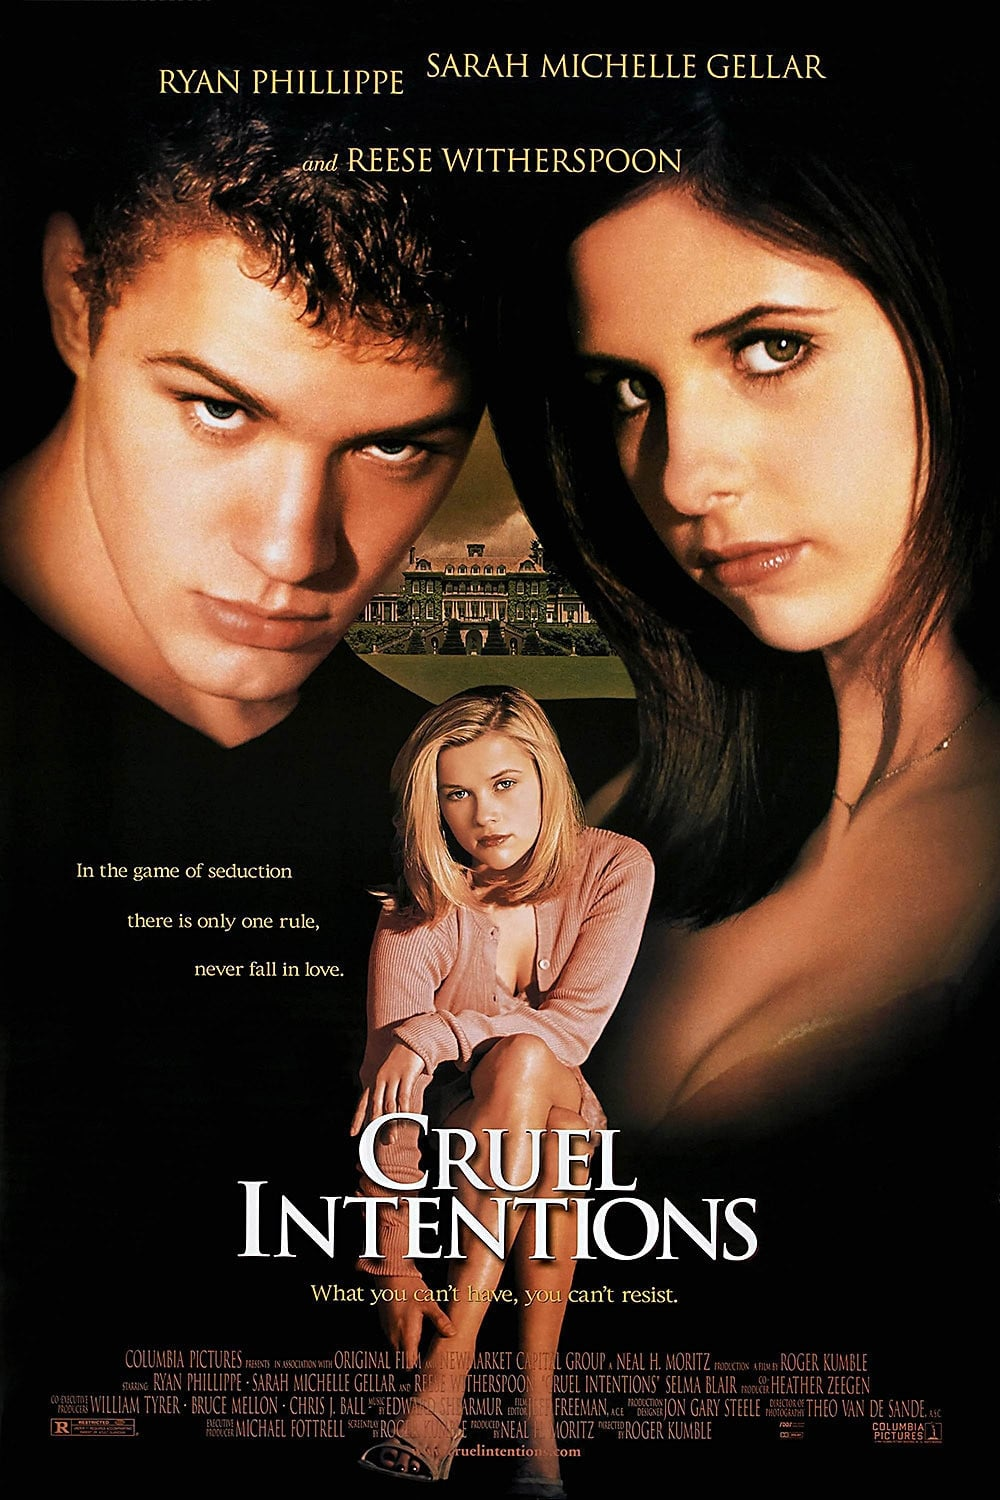 an analysis of the film cruel intentions Cruel intentions is a 1999 american teen romantic drama film directed by roger  kumble and  the film grossed $13,020,565 in its opening weekend, ranking #2  behind analyze this released in 2,312 theaters, the movie raked in $75,902,208 .